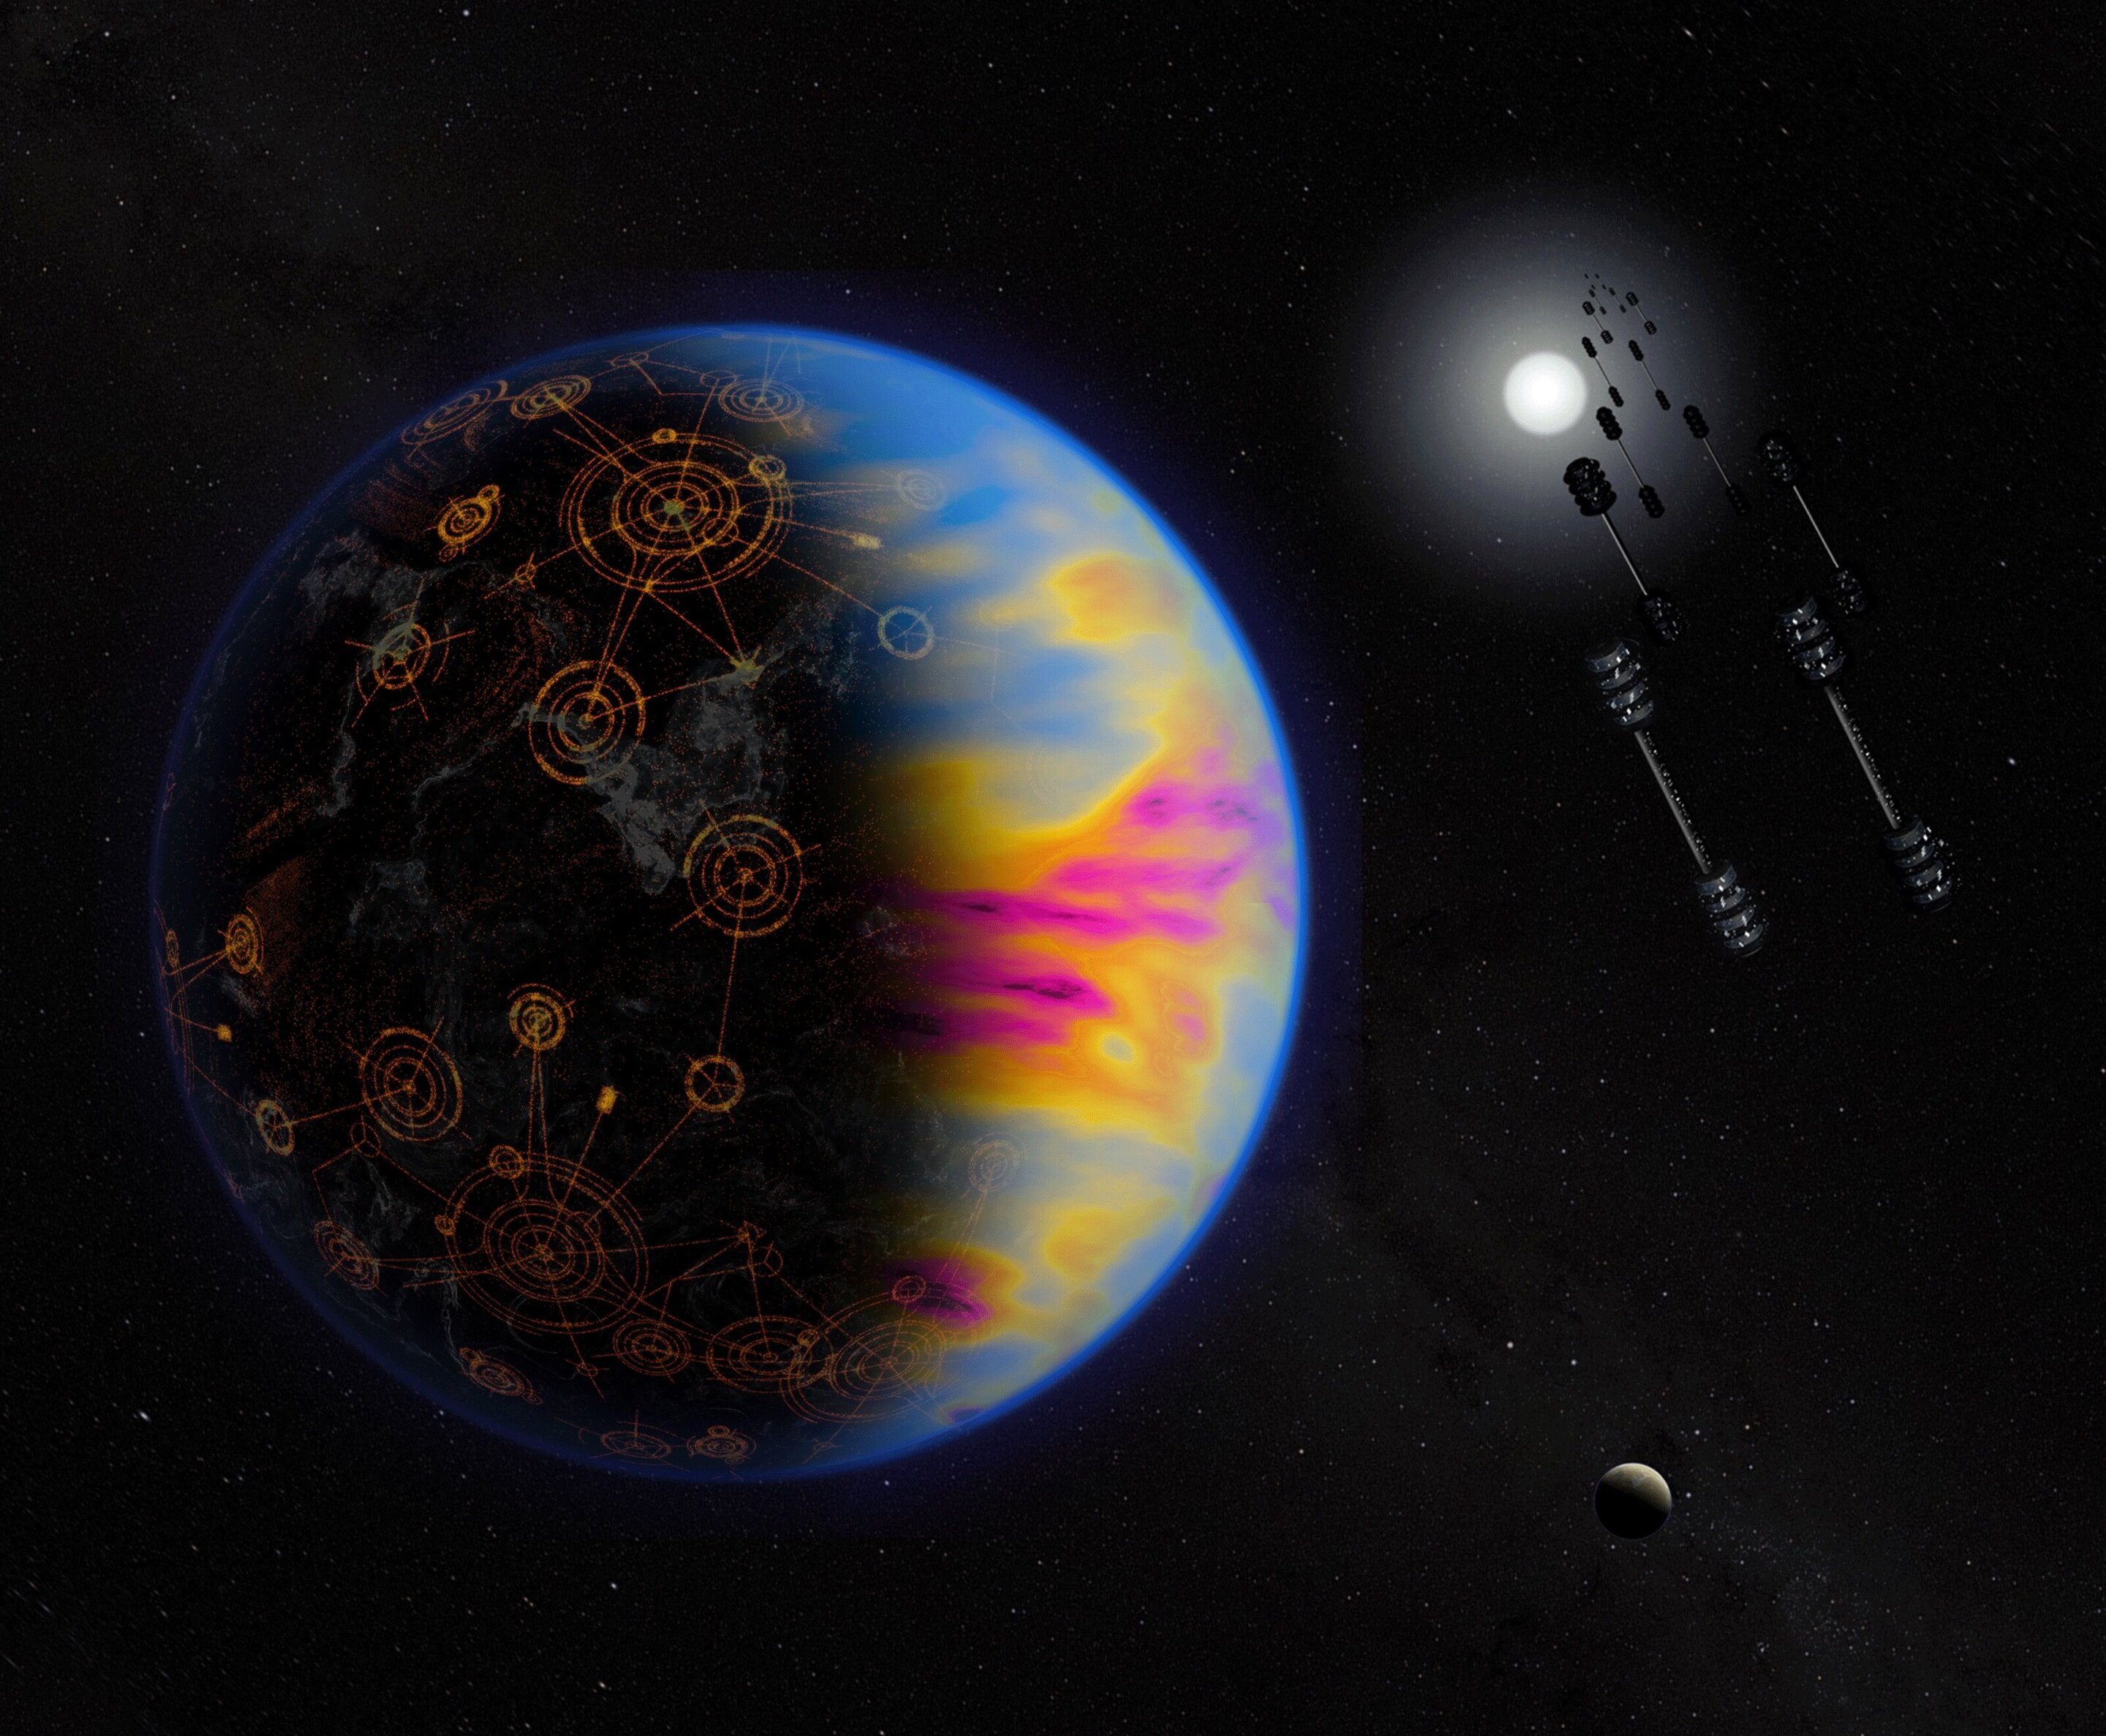 To find an extraterrestrial civilization, pollution could be the solution, NASA study suggests